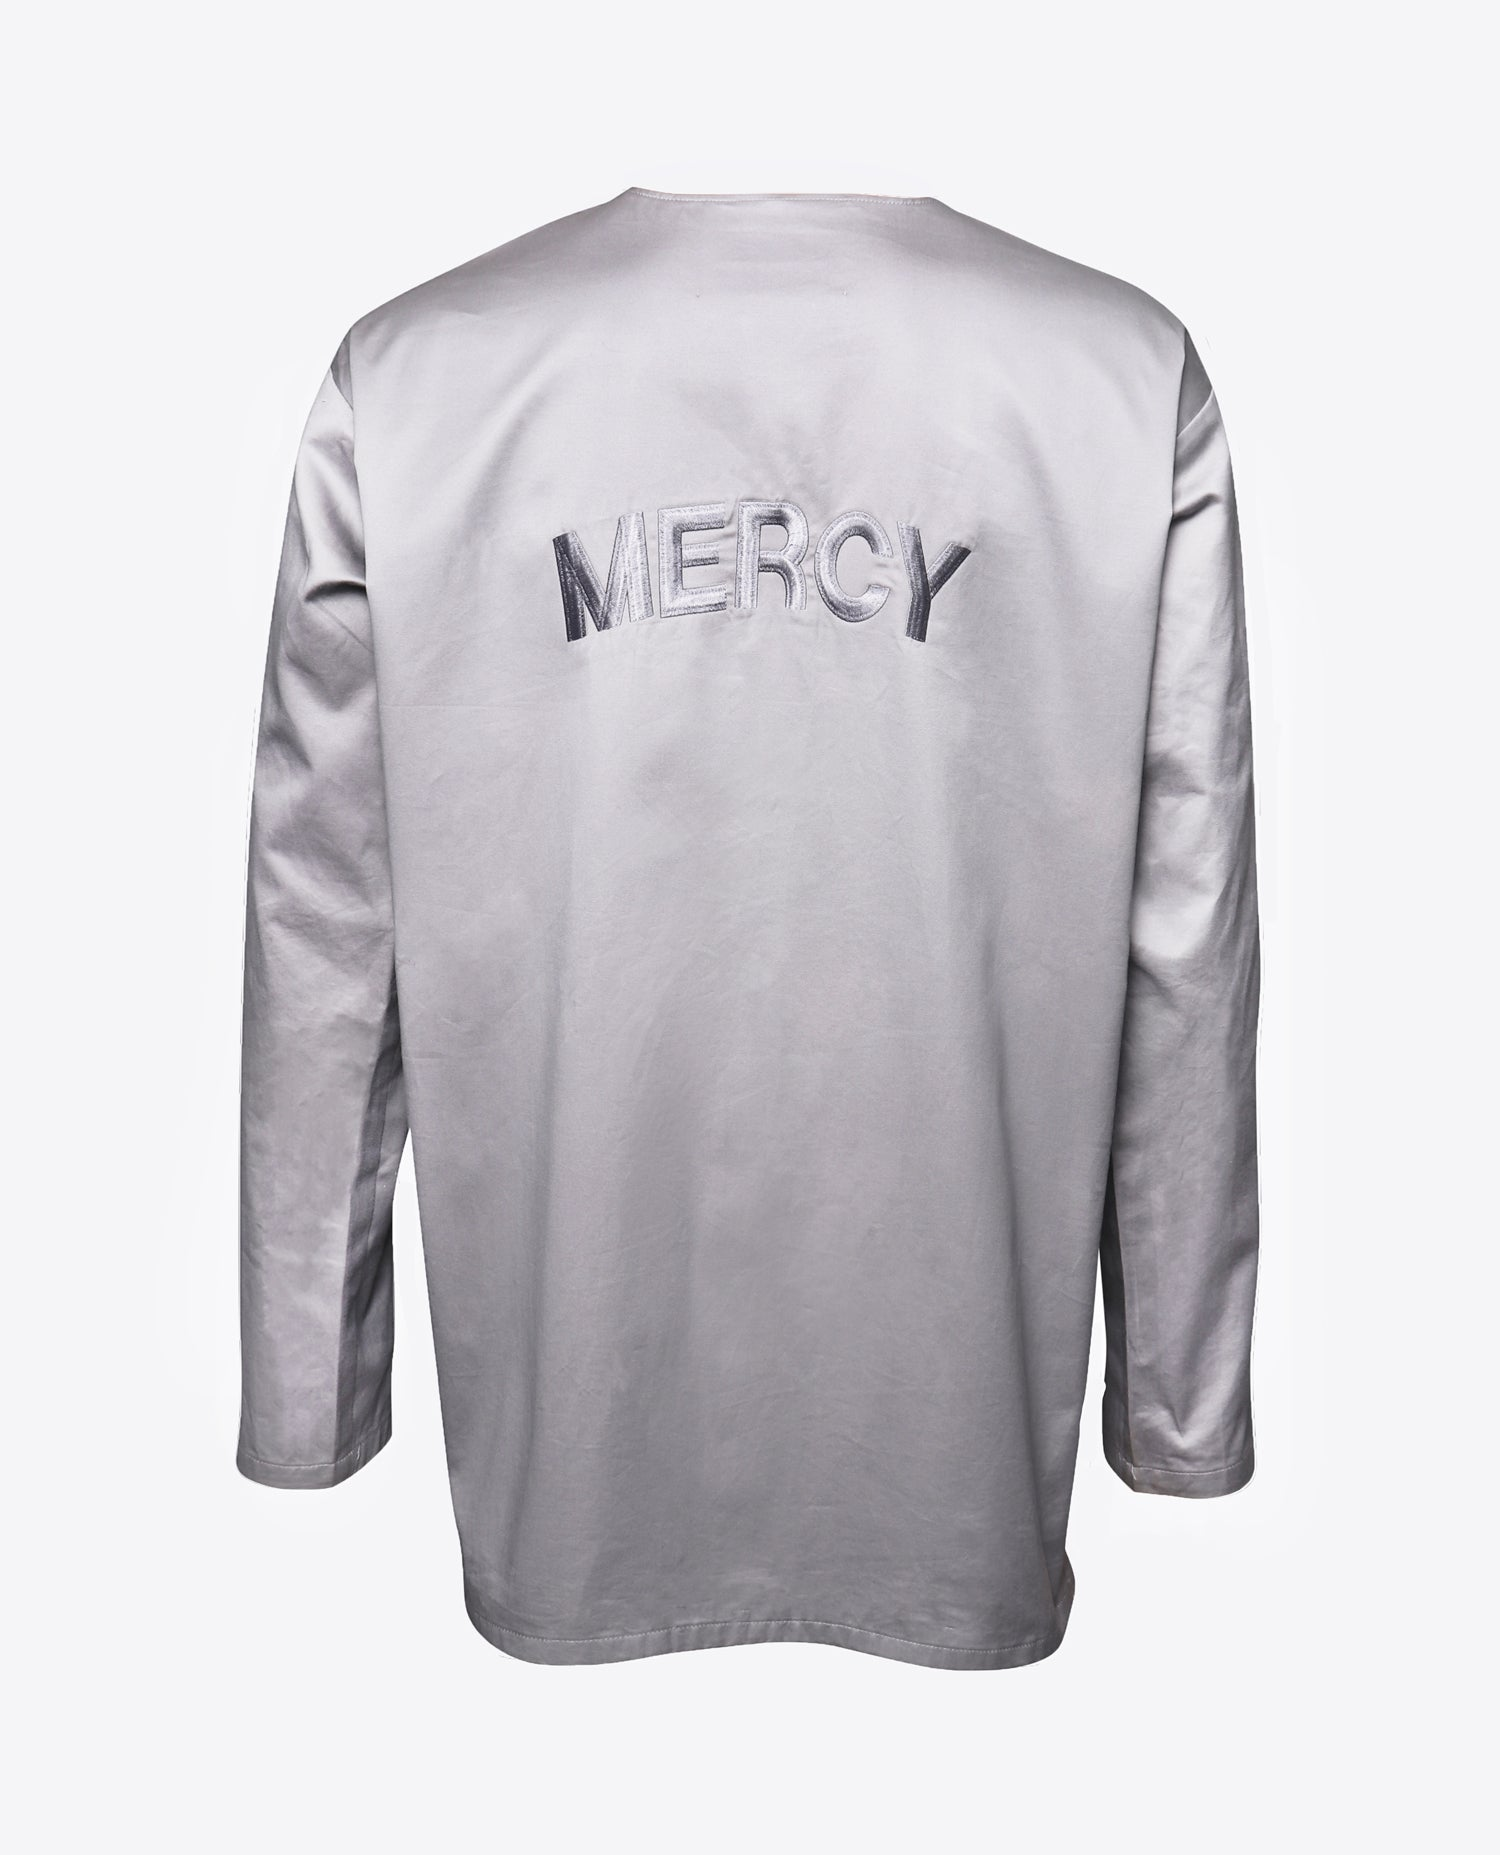 'MERCY' Tunic (Silver)